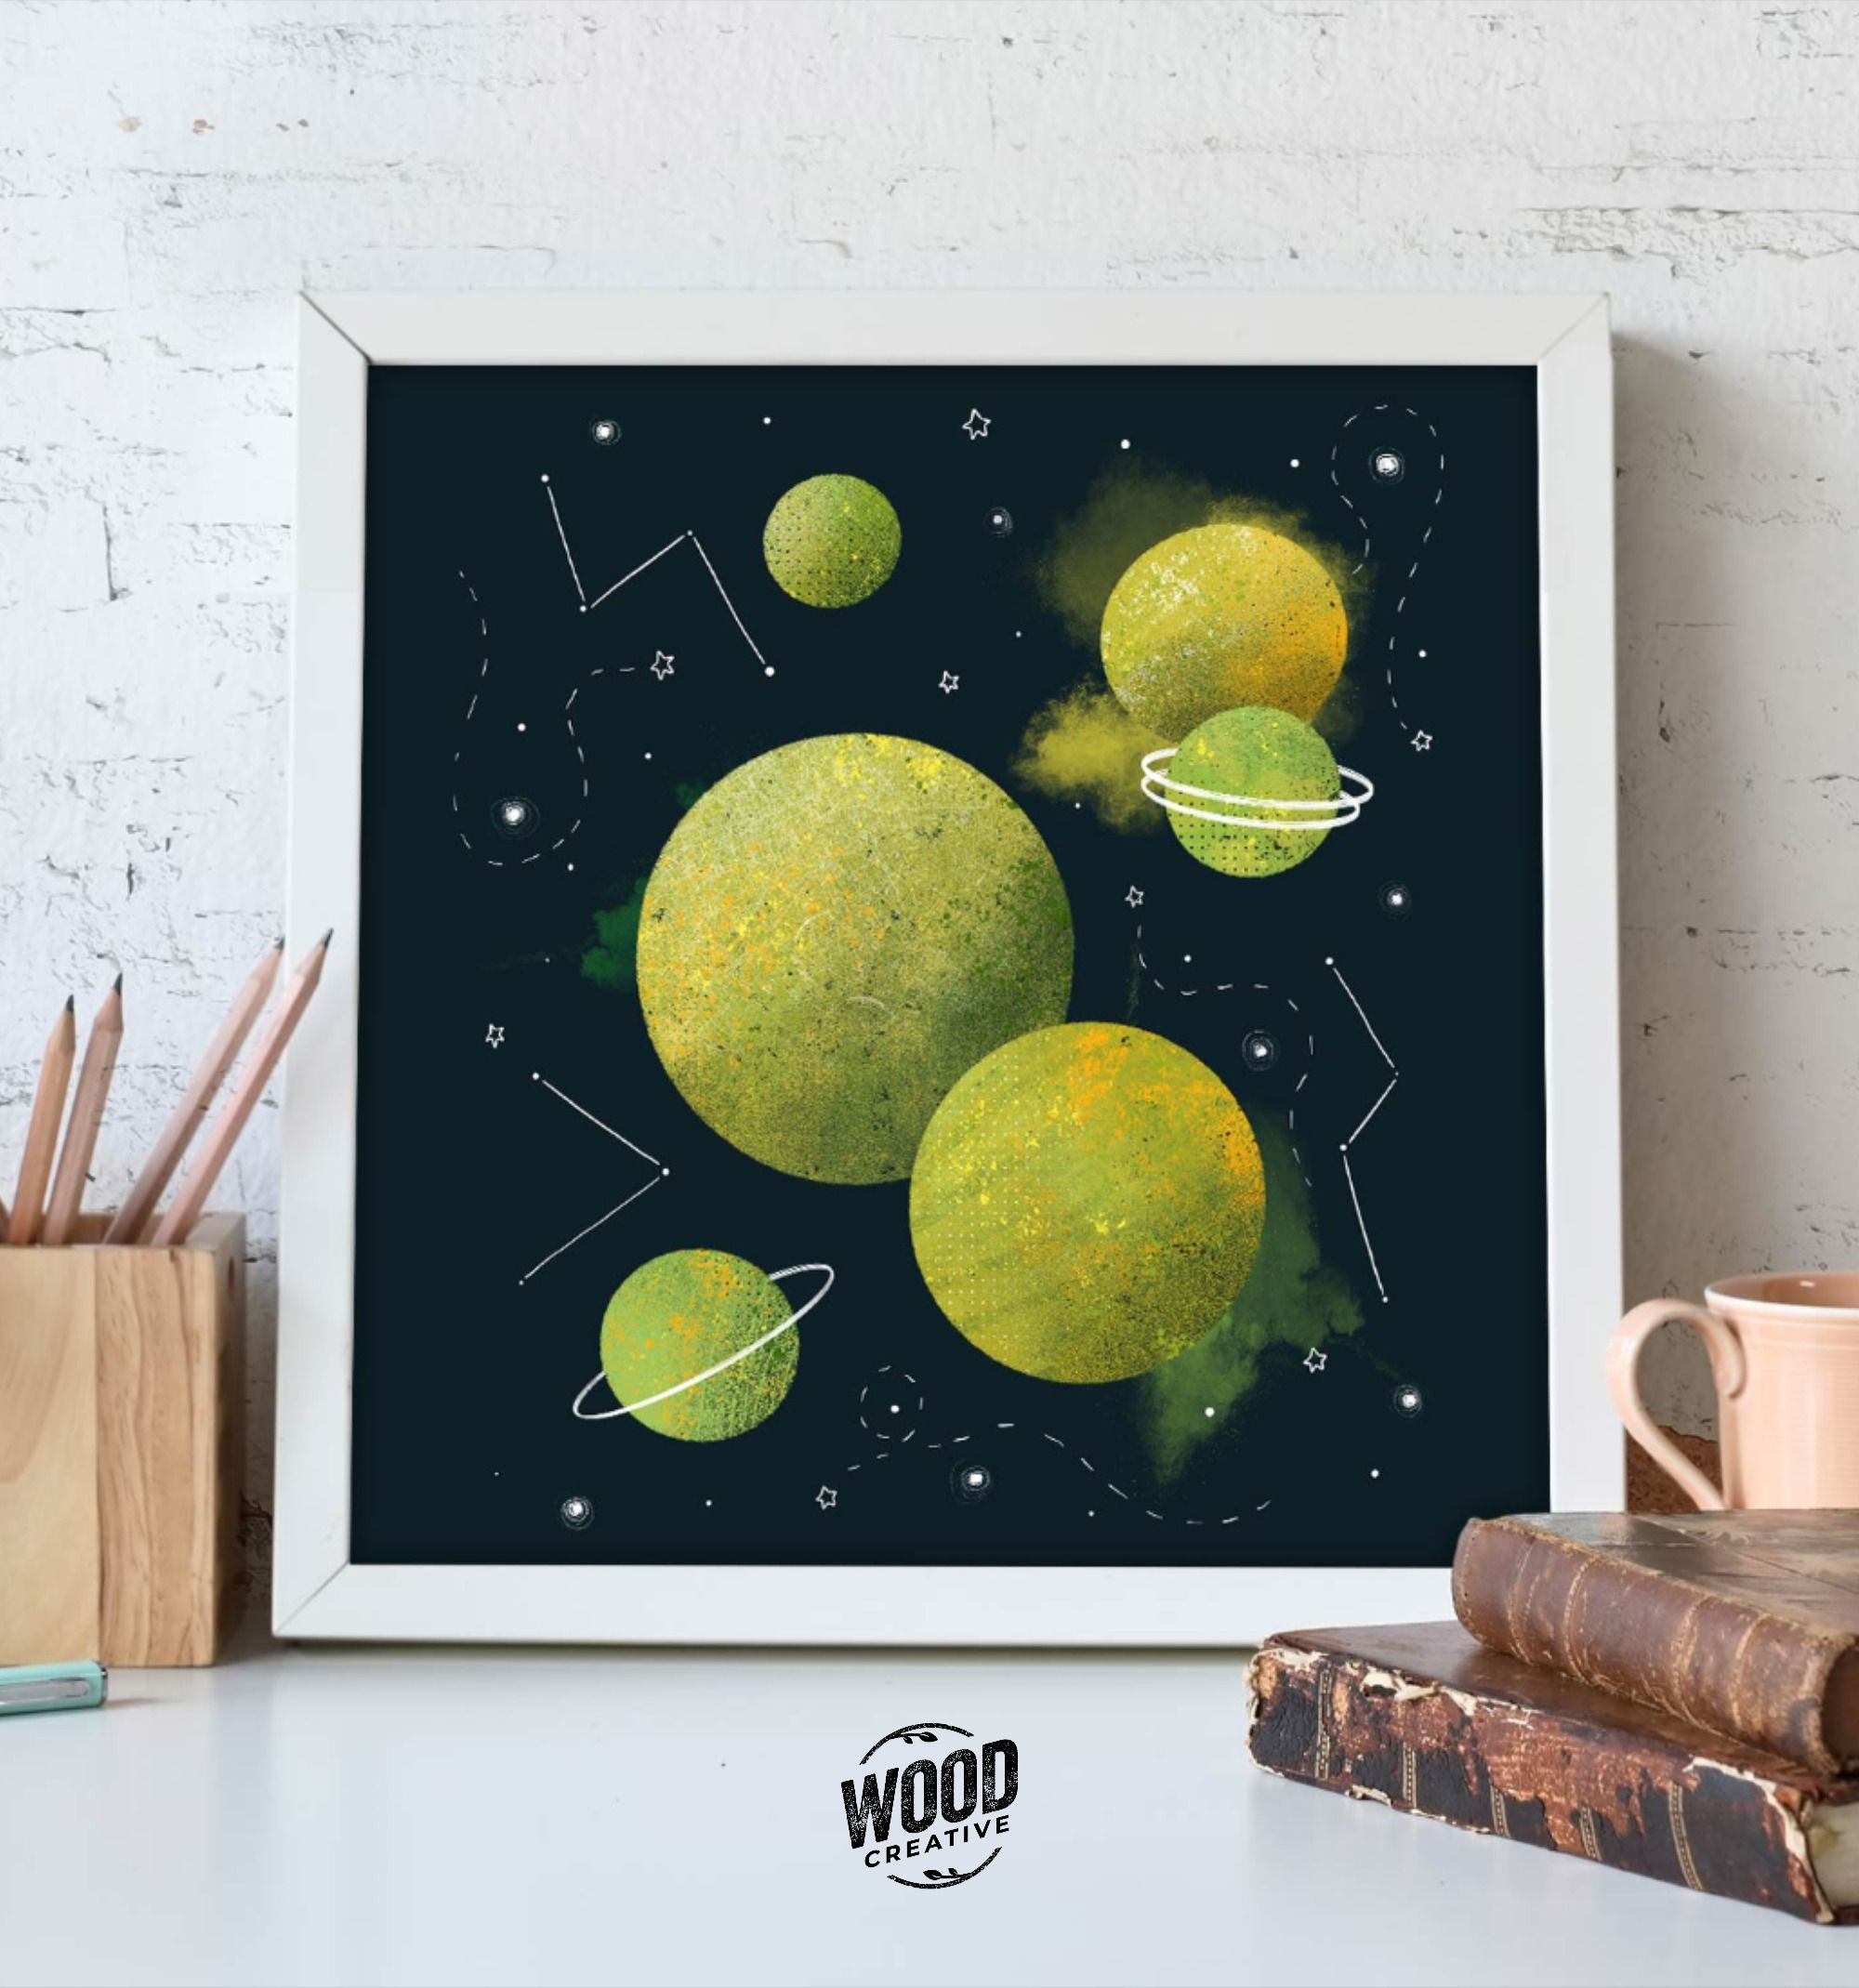 Brighten up any room with our Green Space print! Great print for any room in the house. #etsyshop #printsforsale #woodcreativellc #walldecor #wallart #originalprints #illustration #space #spaceart #spacelove #etsy